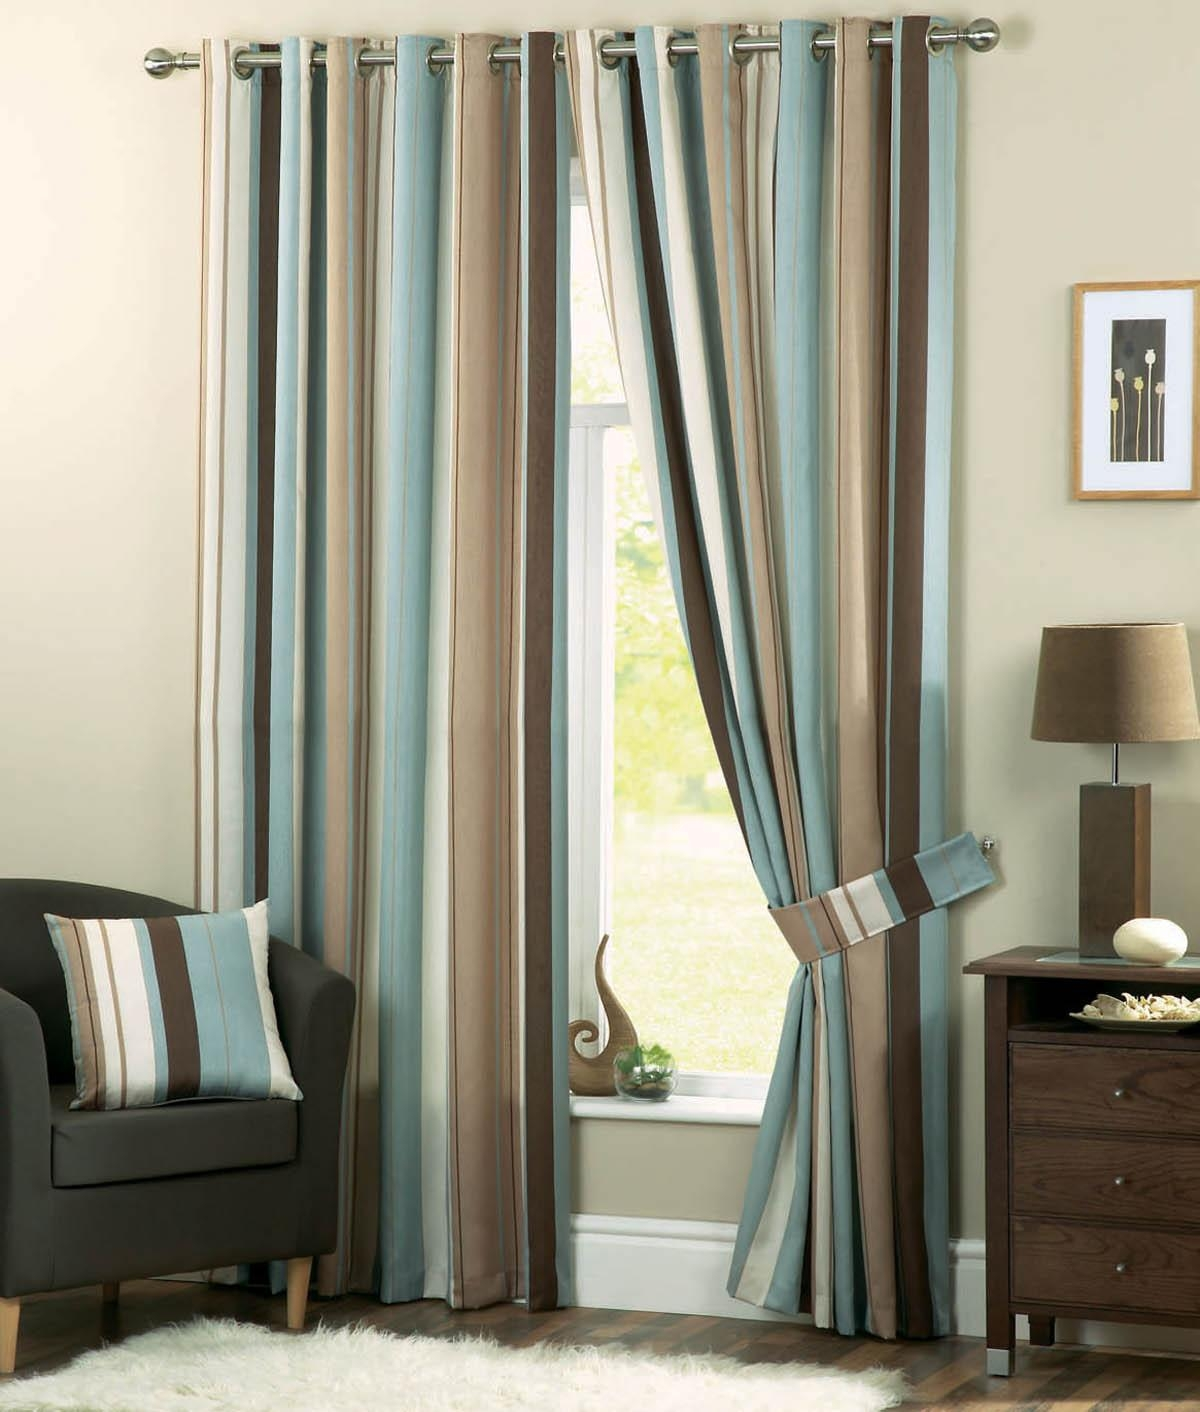 Whitworth Eyelet Curtains Duckegg Free Uk Delivery Terrys Fabrics In Ready Made Curtains For Bay Windows (Image 15 of 15)